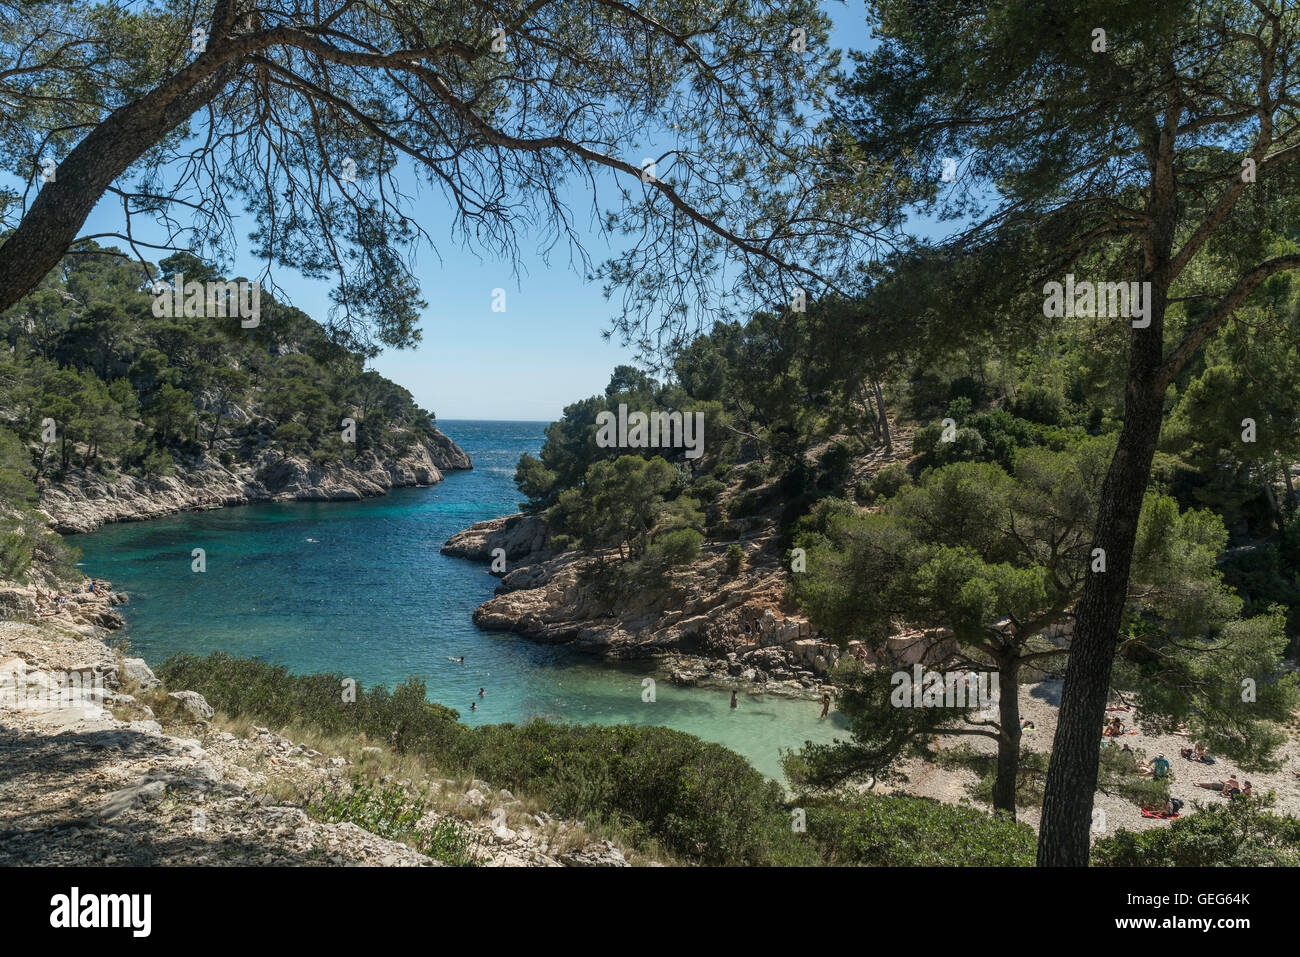 Port Pin beach, Calanques, Cassis,  Provence, France - Stock Image